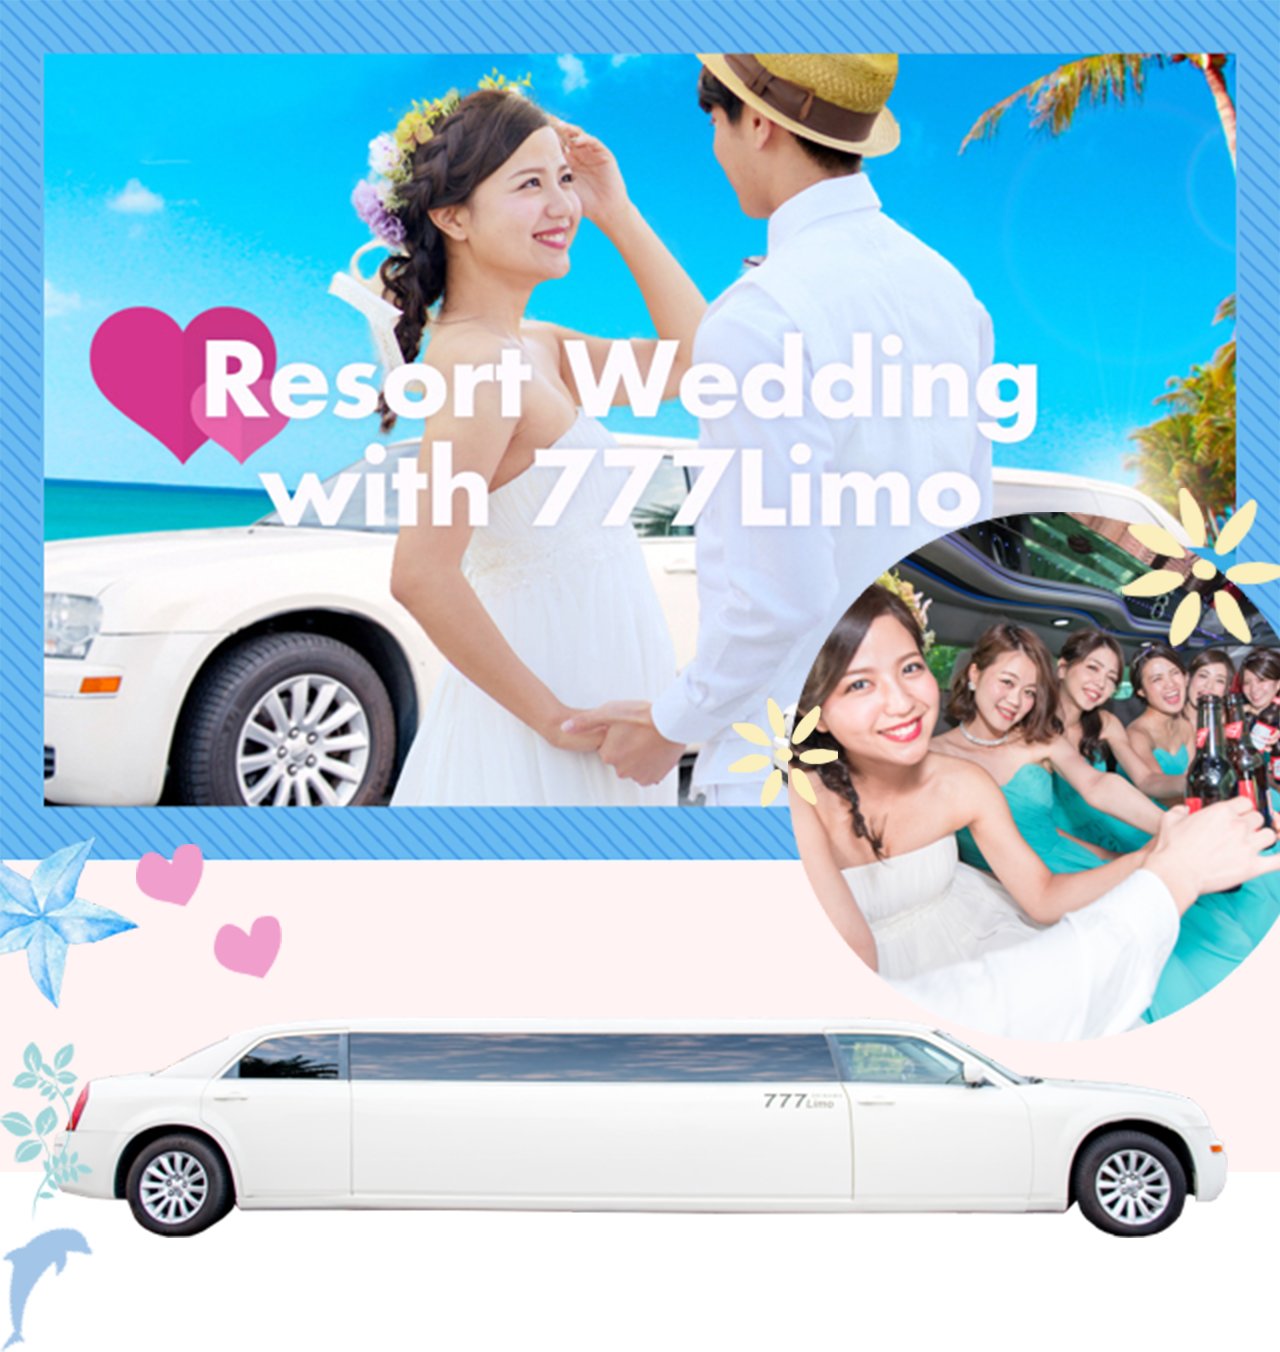 Resort Wedding with 777Limo